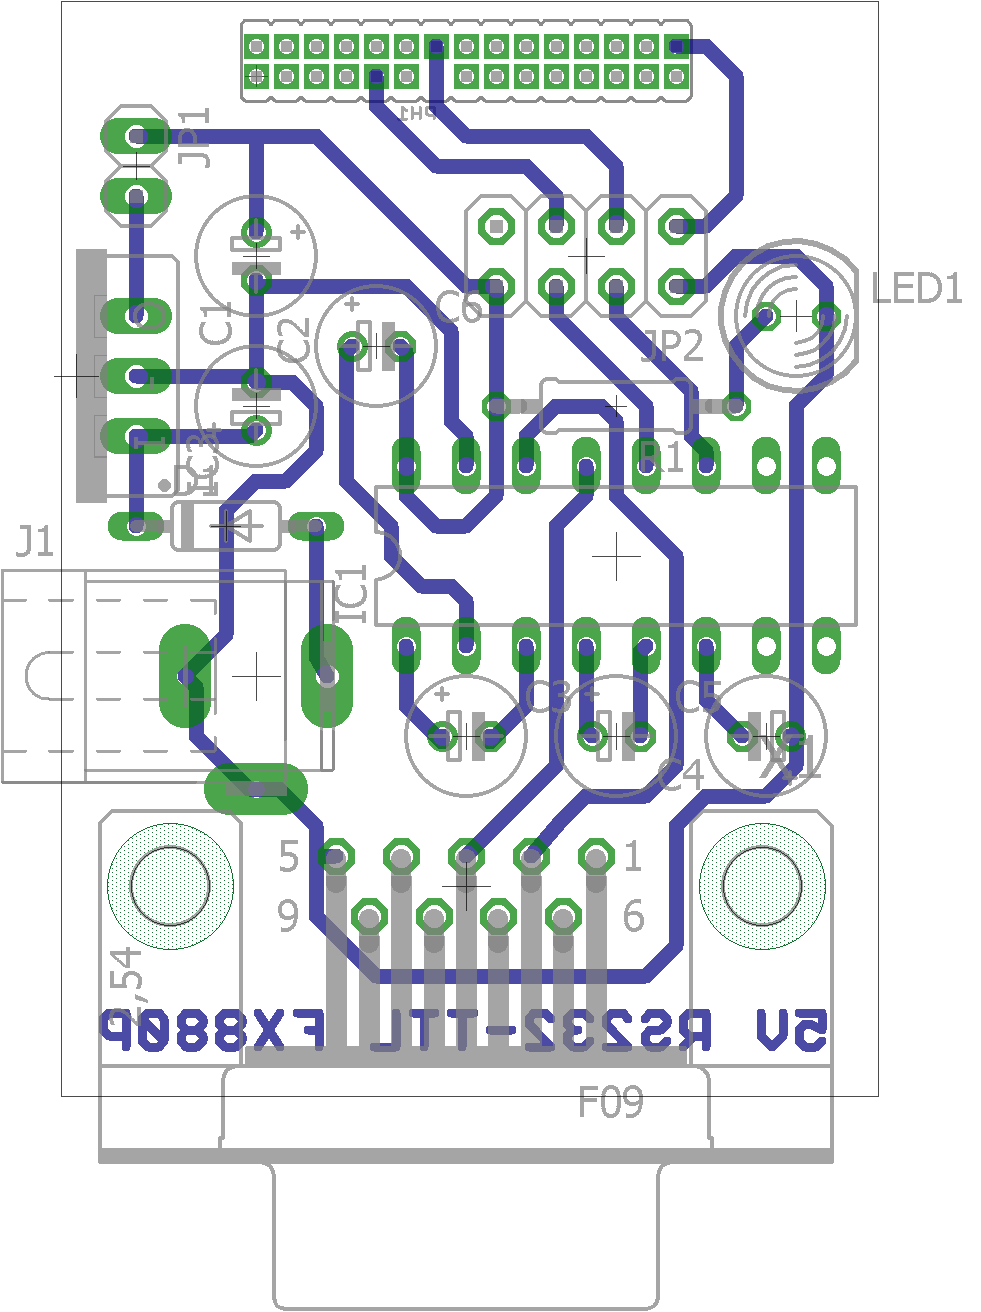 A rs232 ttl adapter for vintage fx casio calculators and other board layout ccuart Choice Image